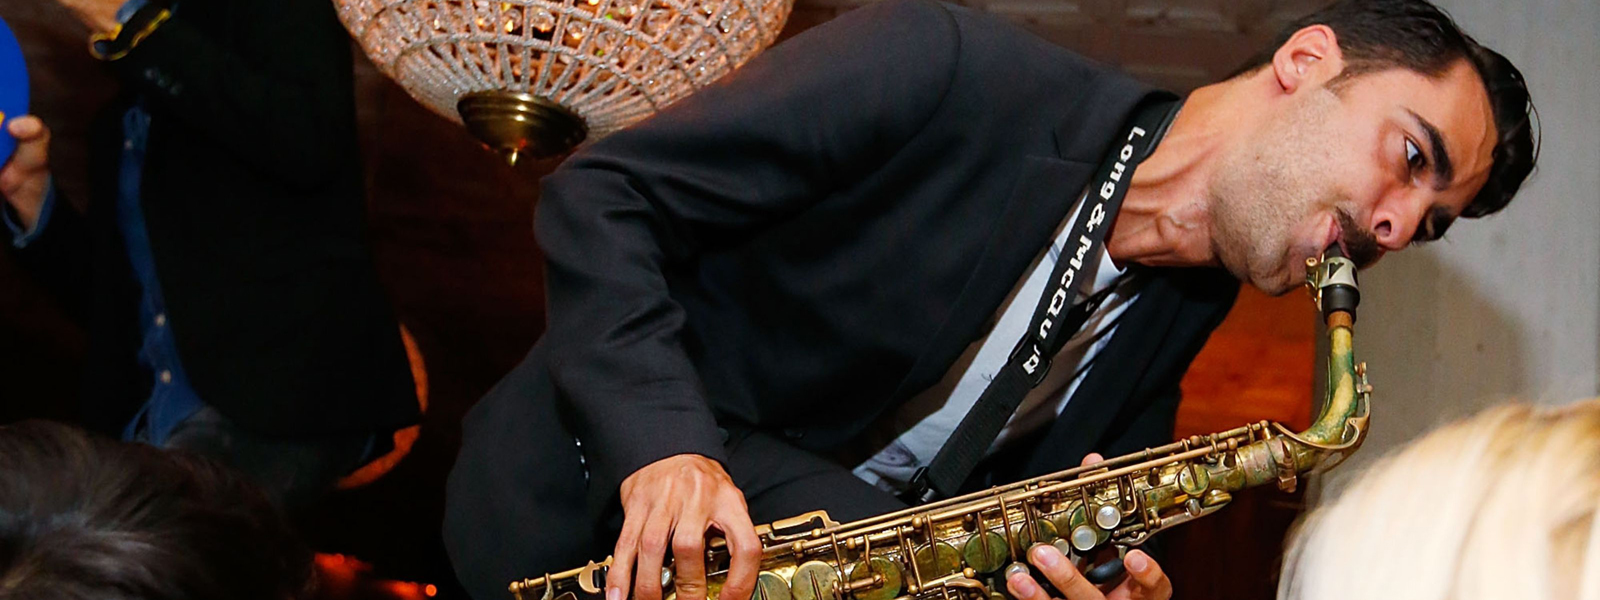 Saxophonist alumnus plays in The Late Show with Stephen